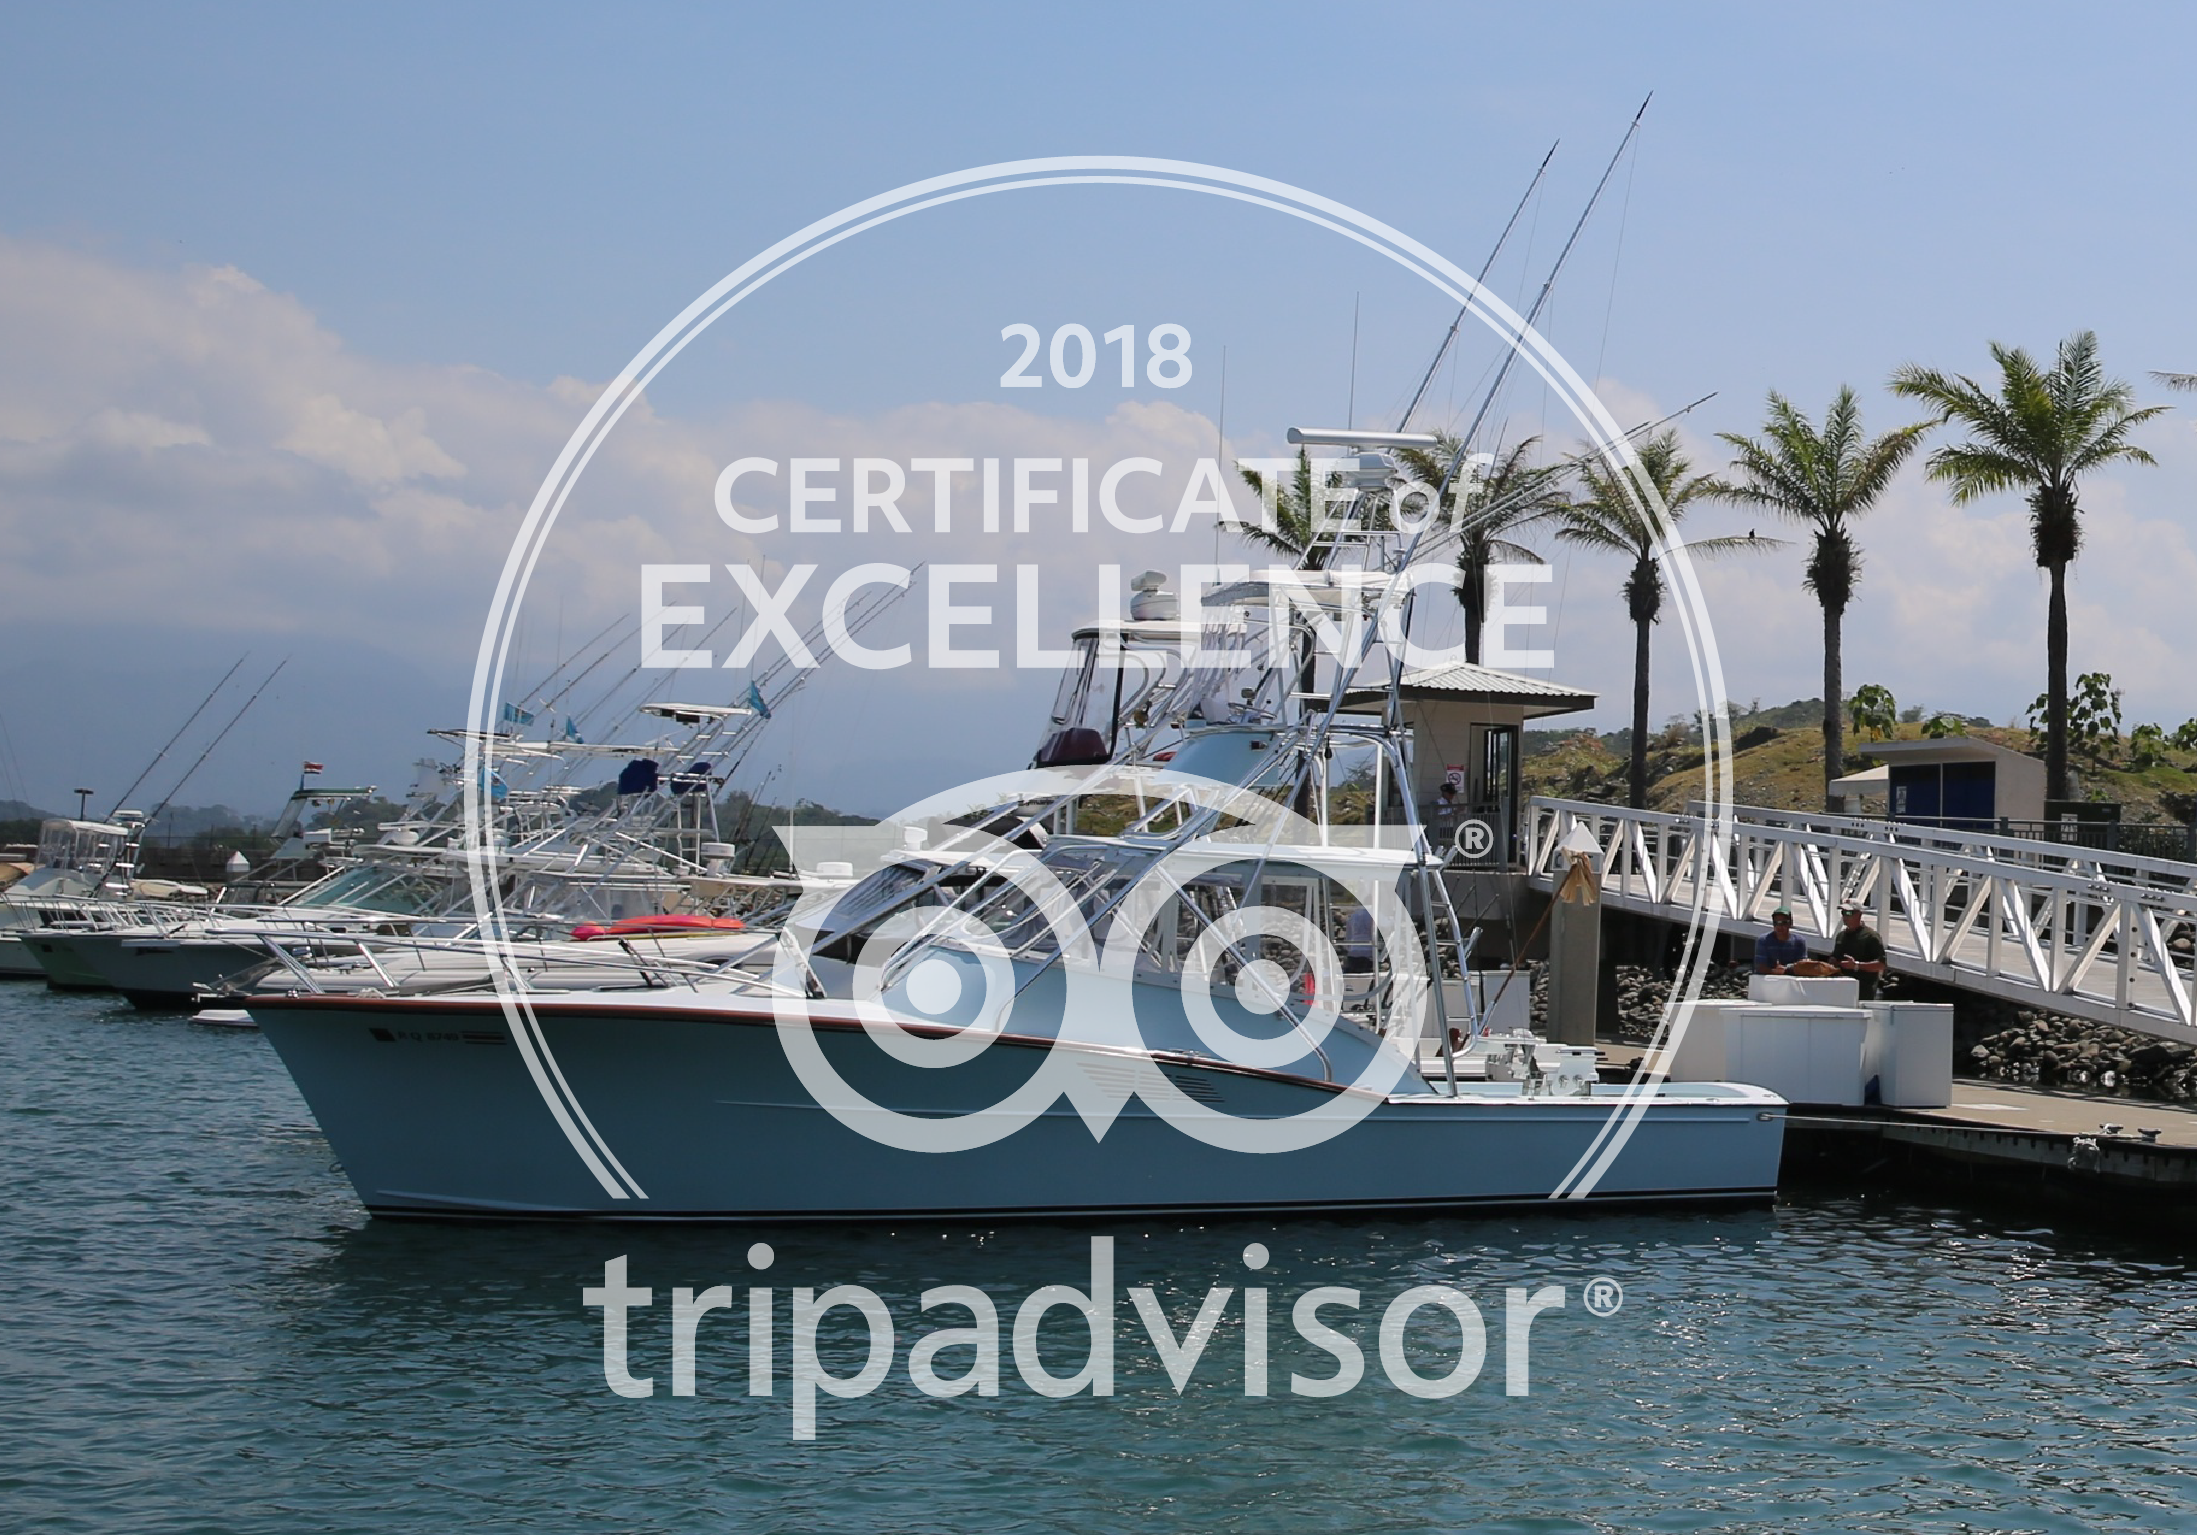 TripAdvisor's Certificate of Excellence 2018 - Thanks to our crew and anglers